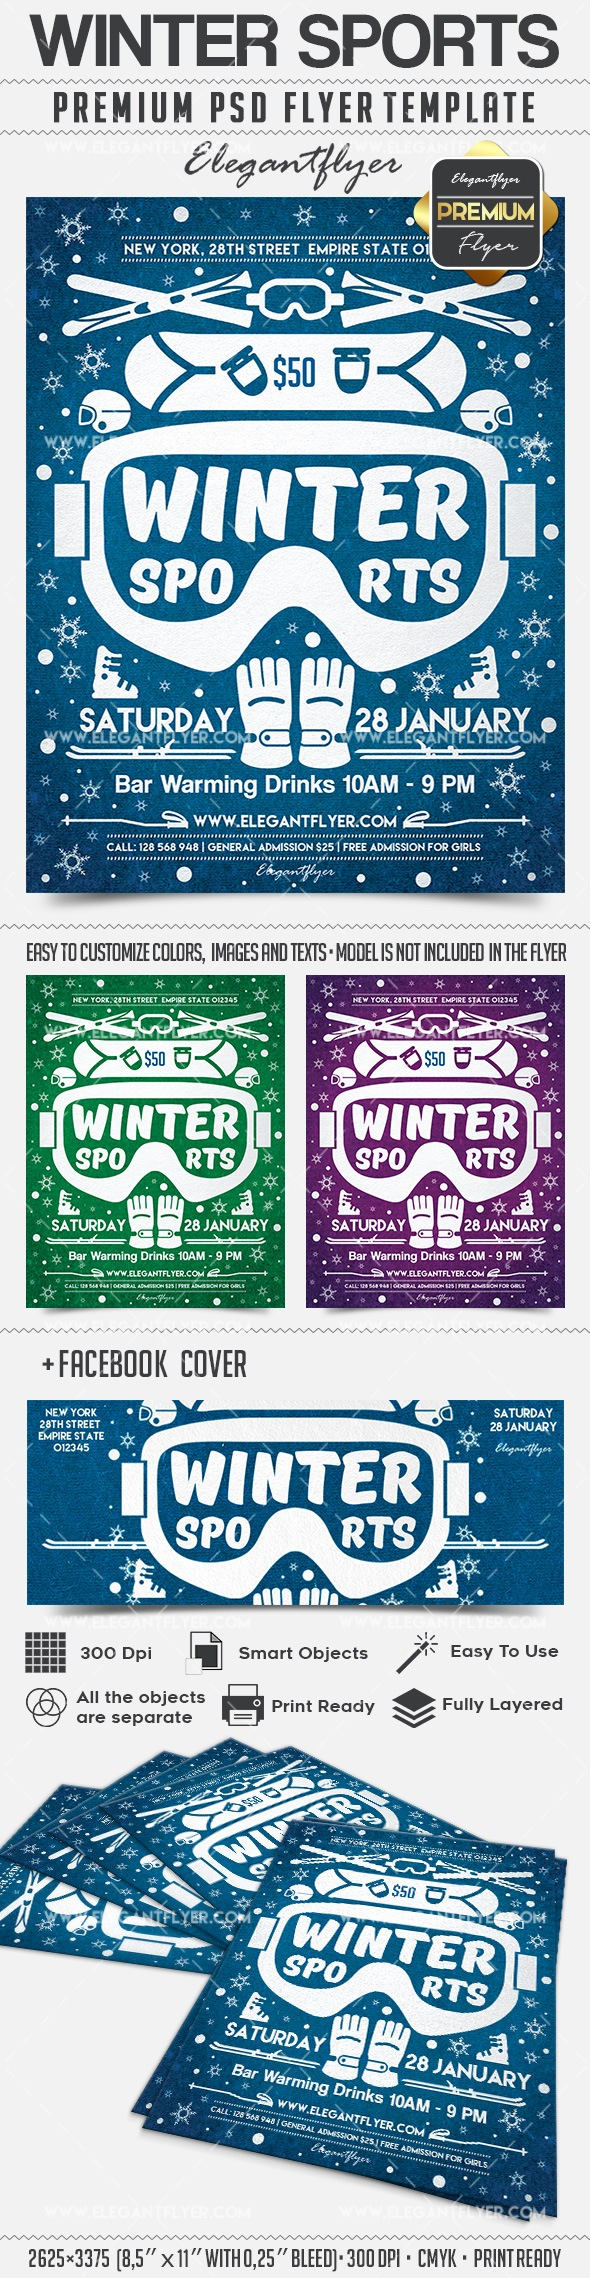 Different Winter Sports PSD Flyer